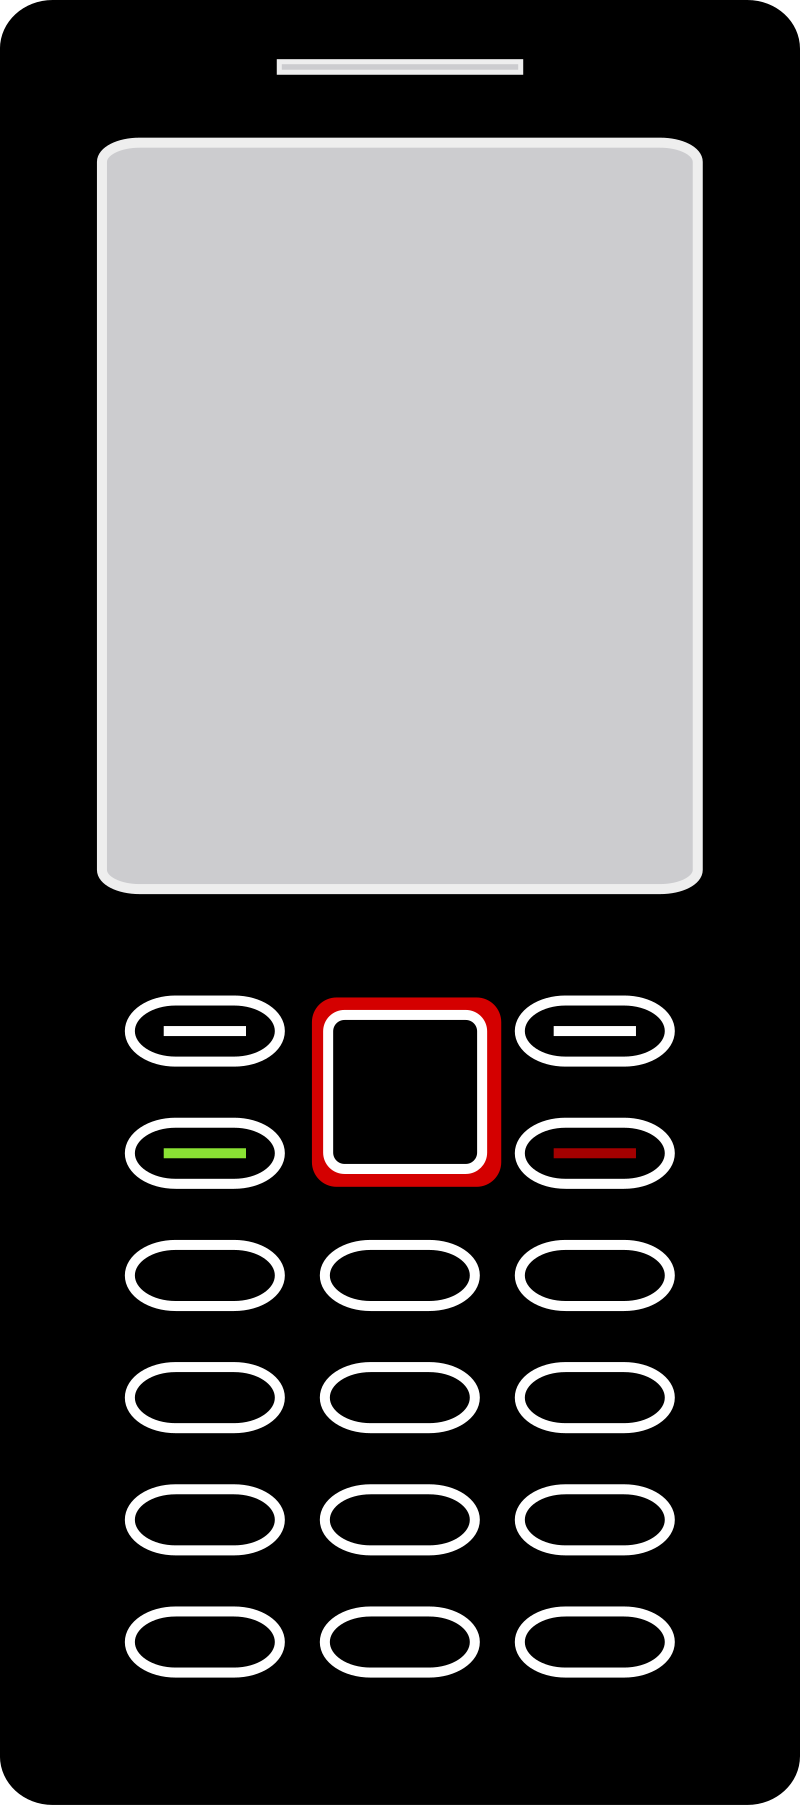 Cellphone by SOlvera - A basic cellphone design.